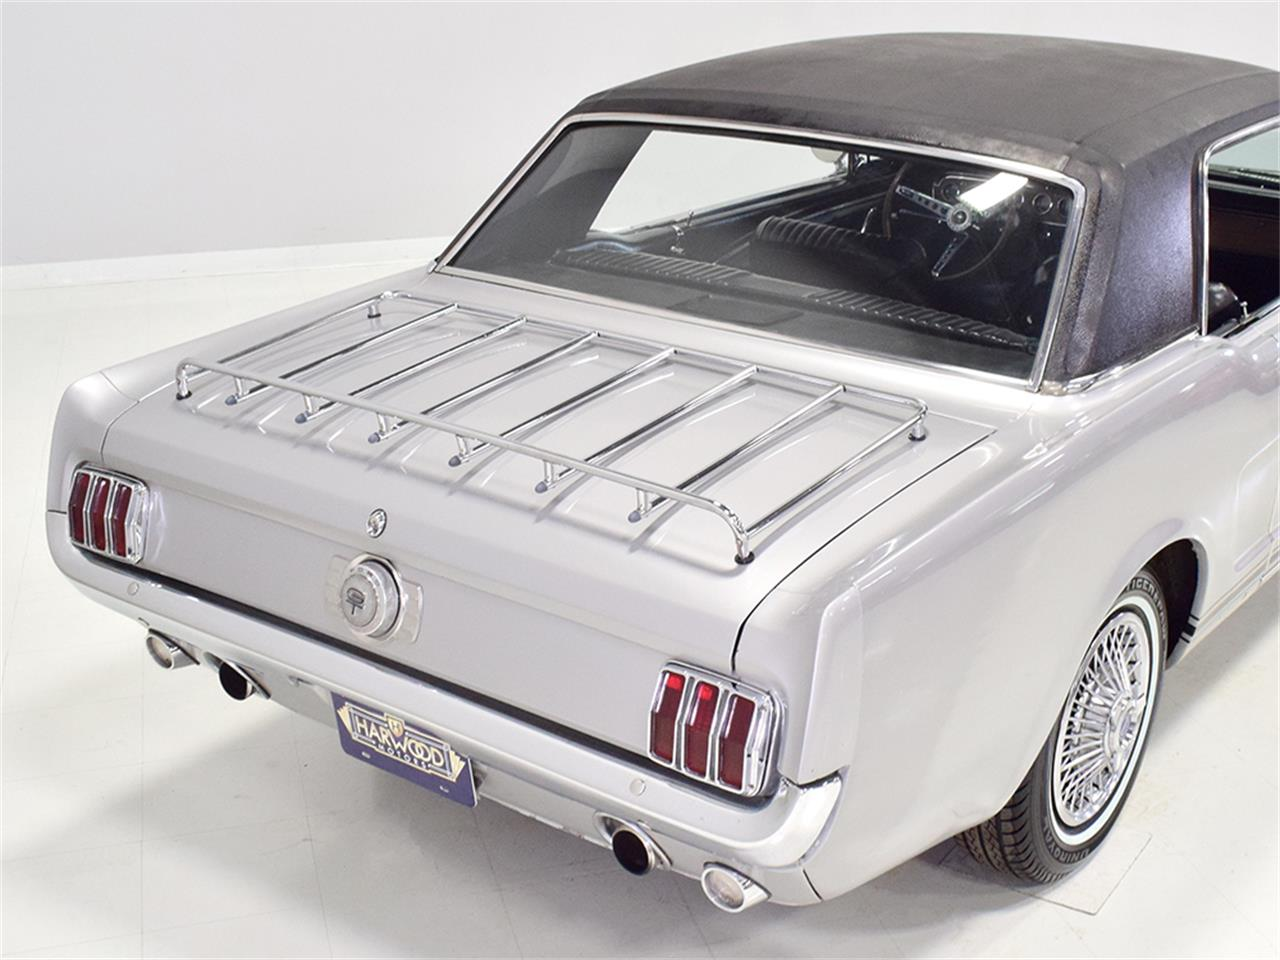 Large Picture of Classic '66 Ford Mustang GT Offered by Harwood Motors, LTD. - Q0S5